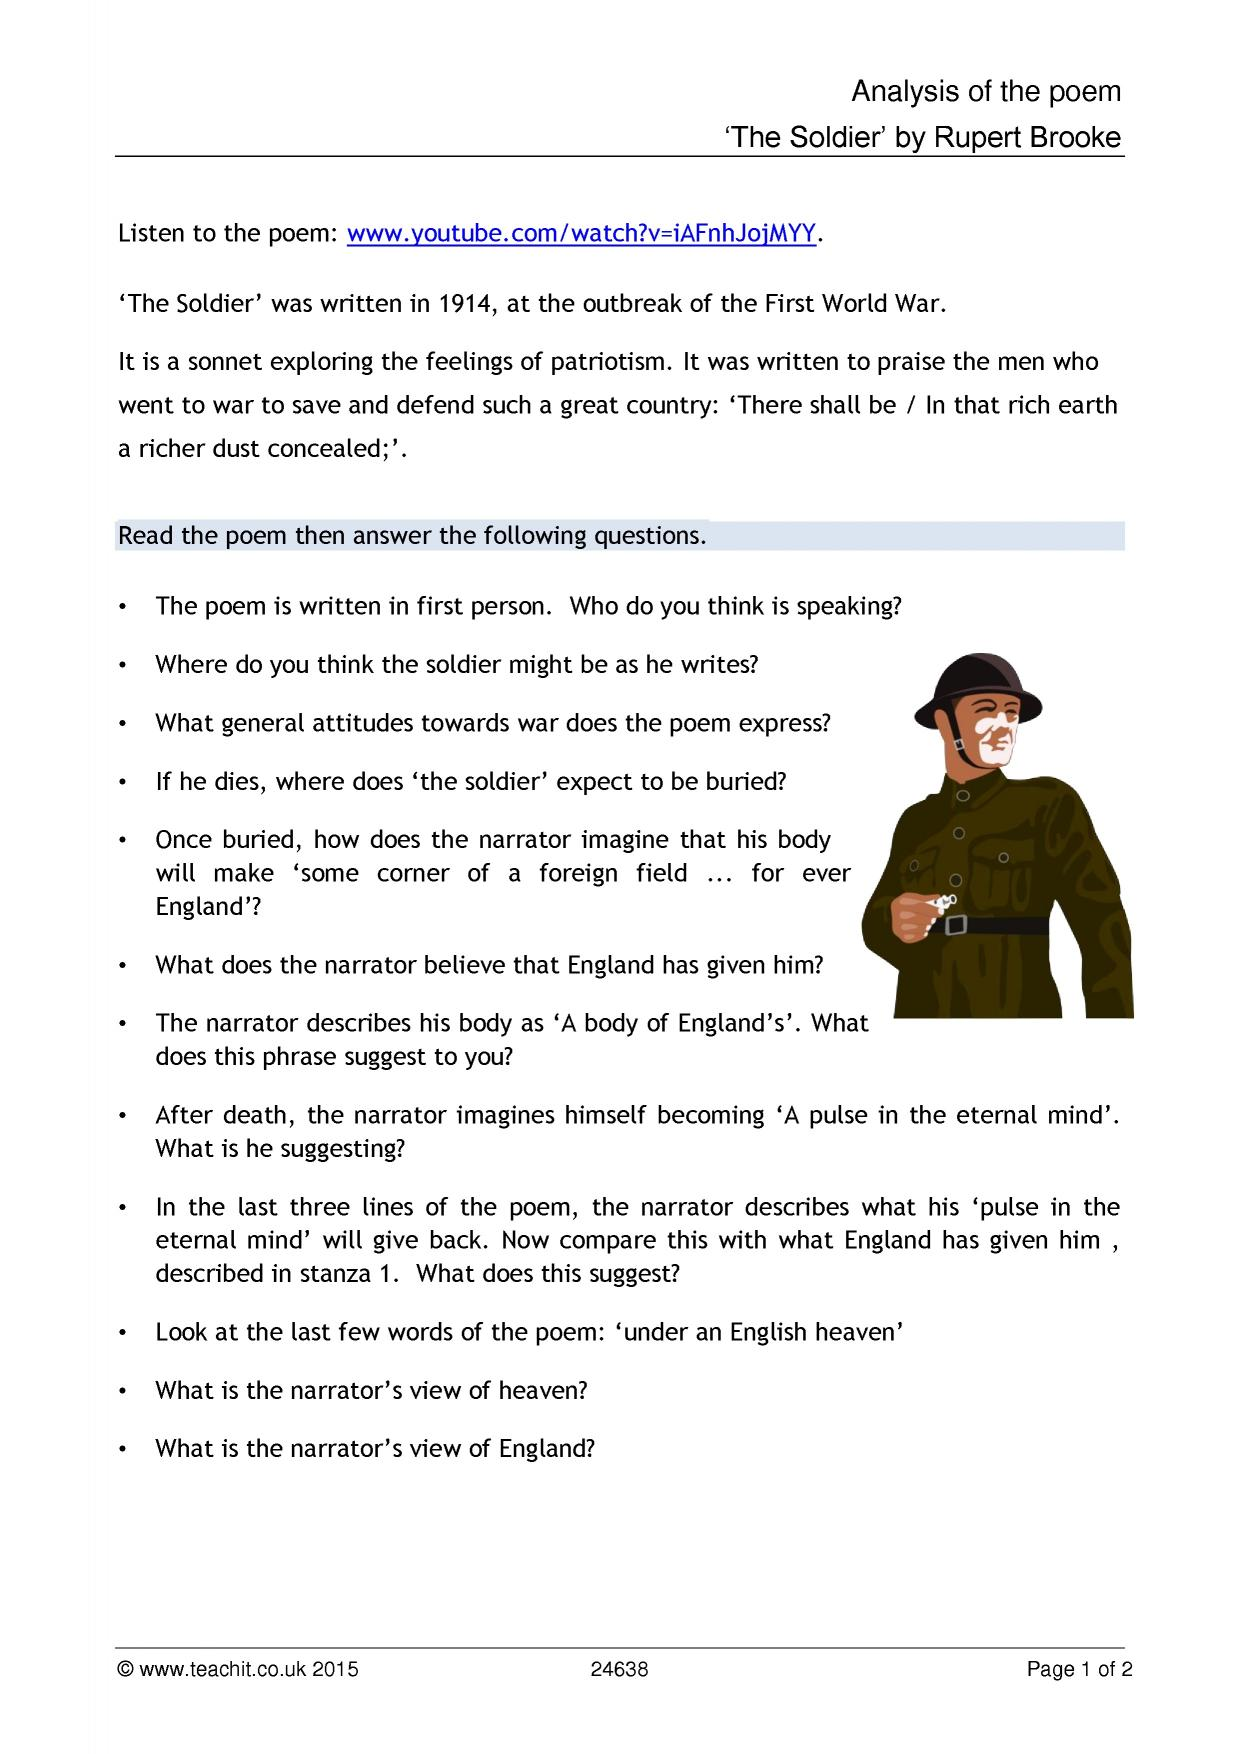 an analysis of the poem the soldier by rupert brooke Background rupert brooke wrote the soldier in 1914 it forms part of a series of poems, all written by brooke the poems were written as war sonnets at the onset of world war i.